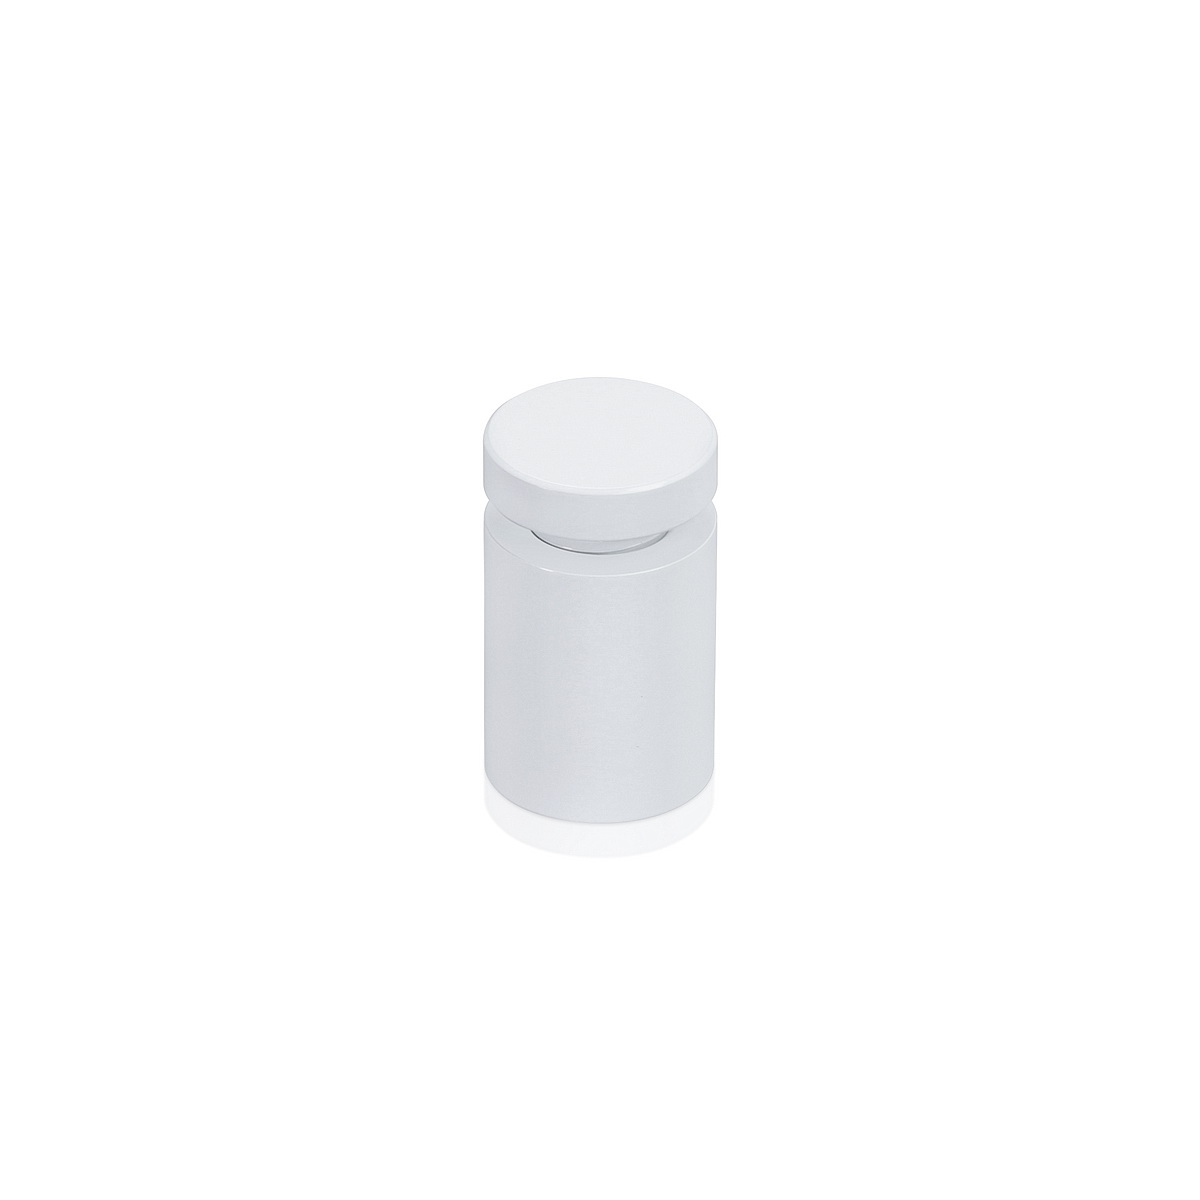 Affordable Aluminum Standoffs, Diameter: 5/8'', Standoff: 3/4'', Aluminum White Coated Finish